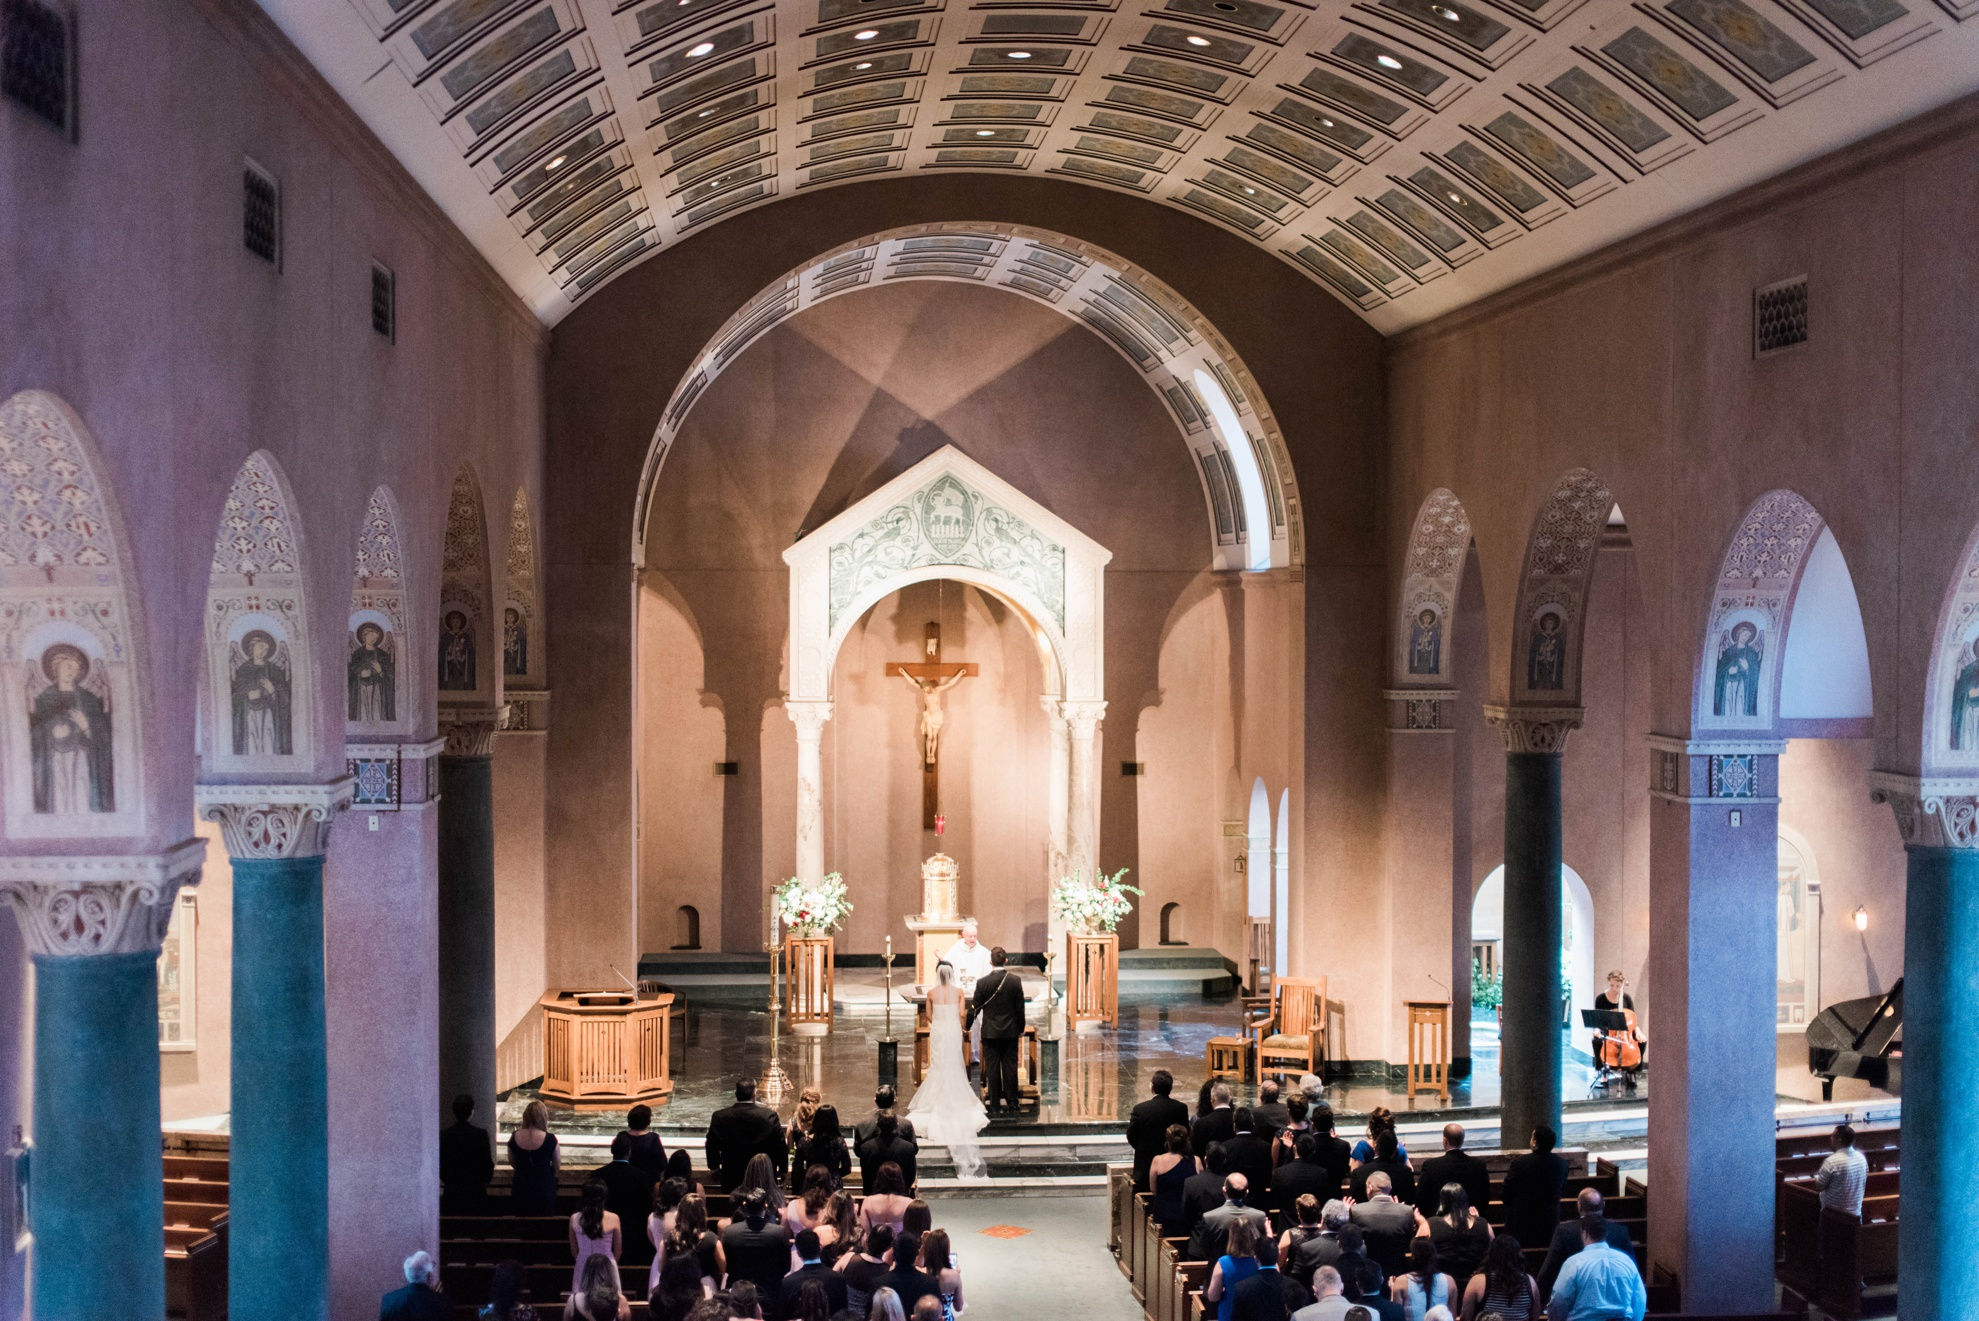 St.-Anne-Catholic-Church-Wedding-Houston-Ceremony-Photographer-Dana-Fernandez-Photography-2.jpg